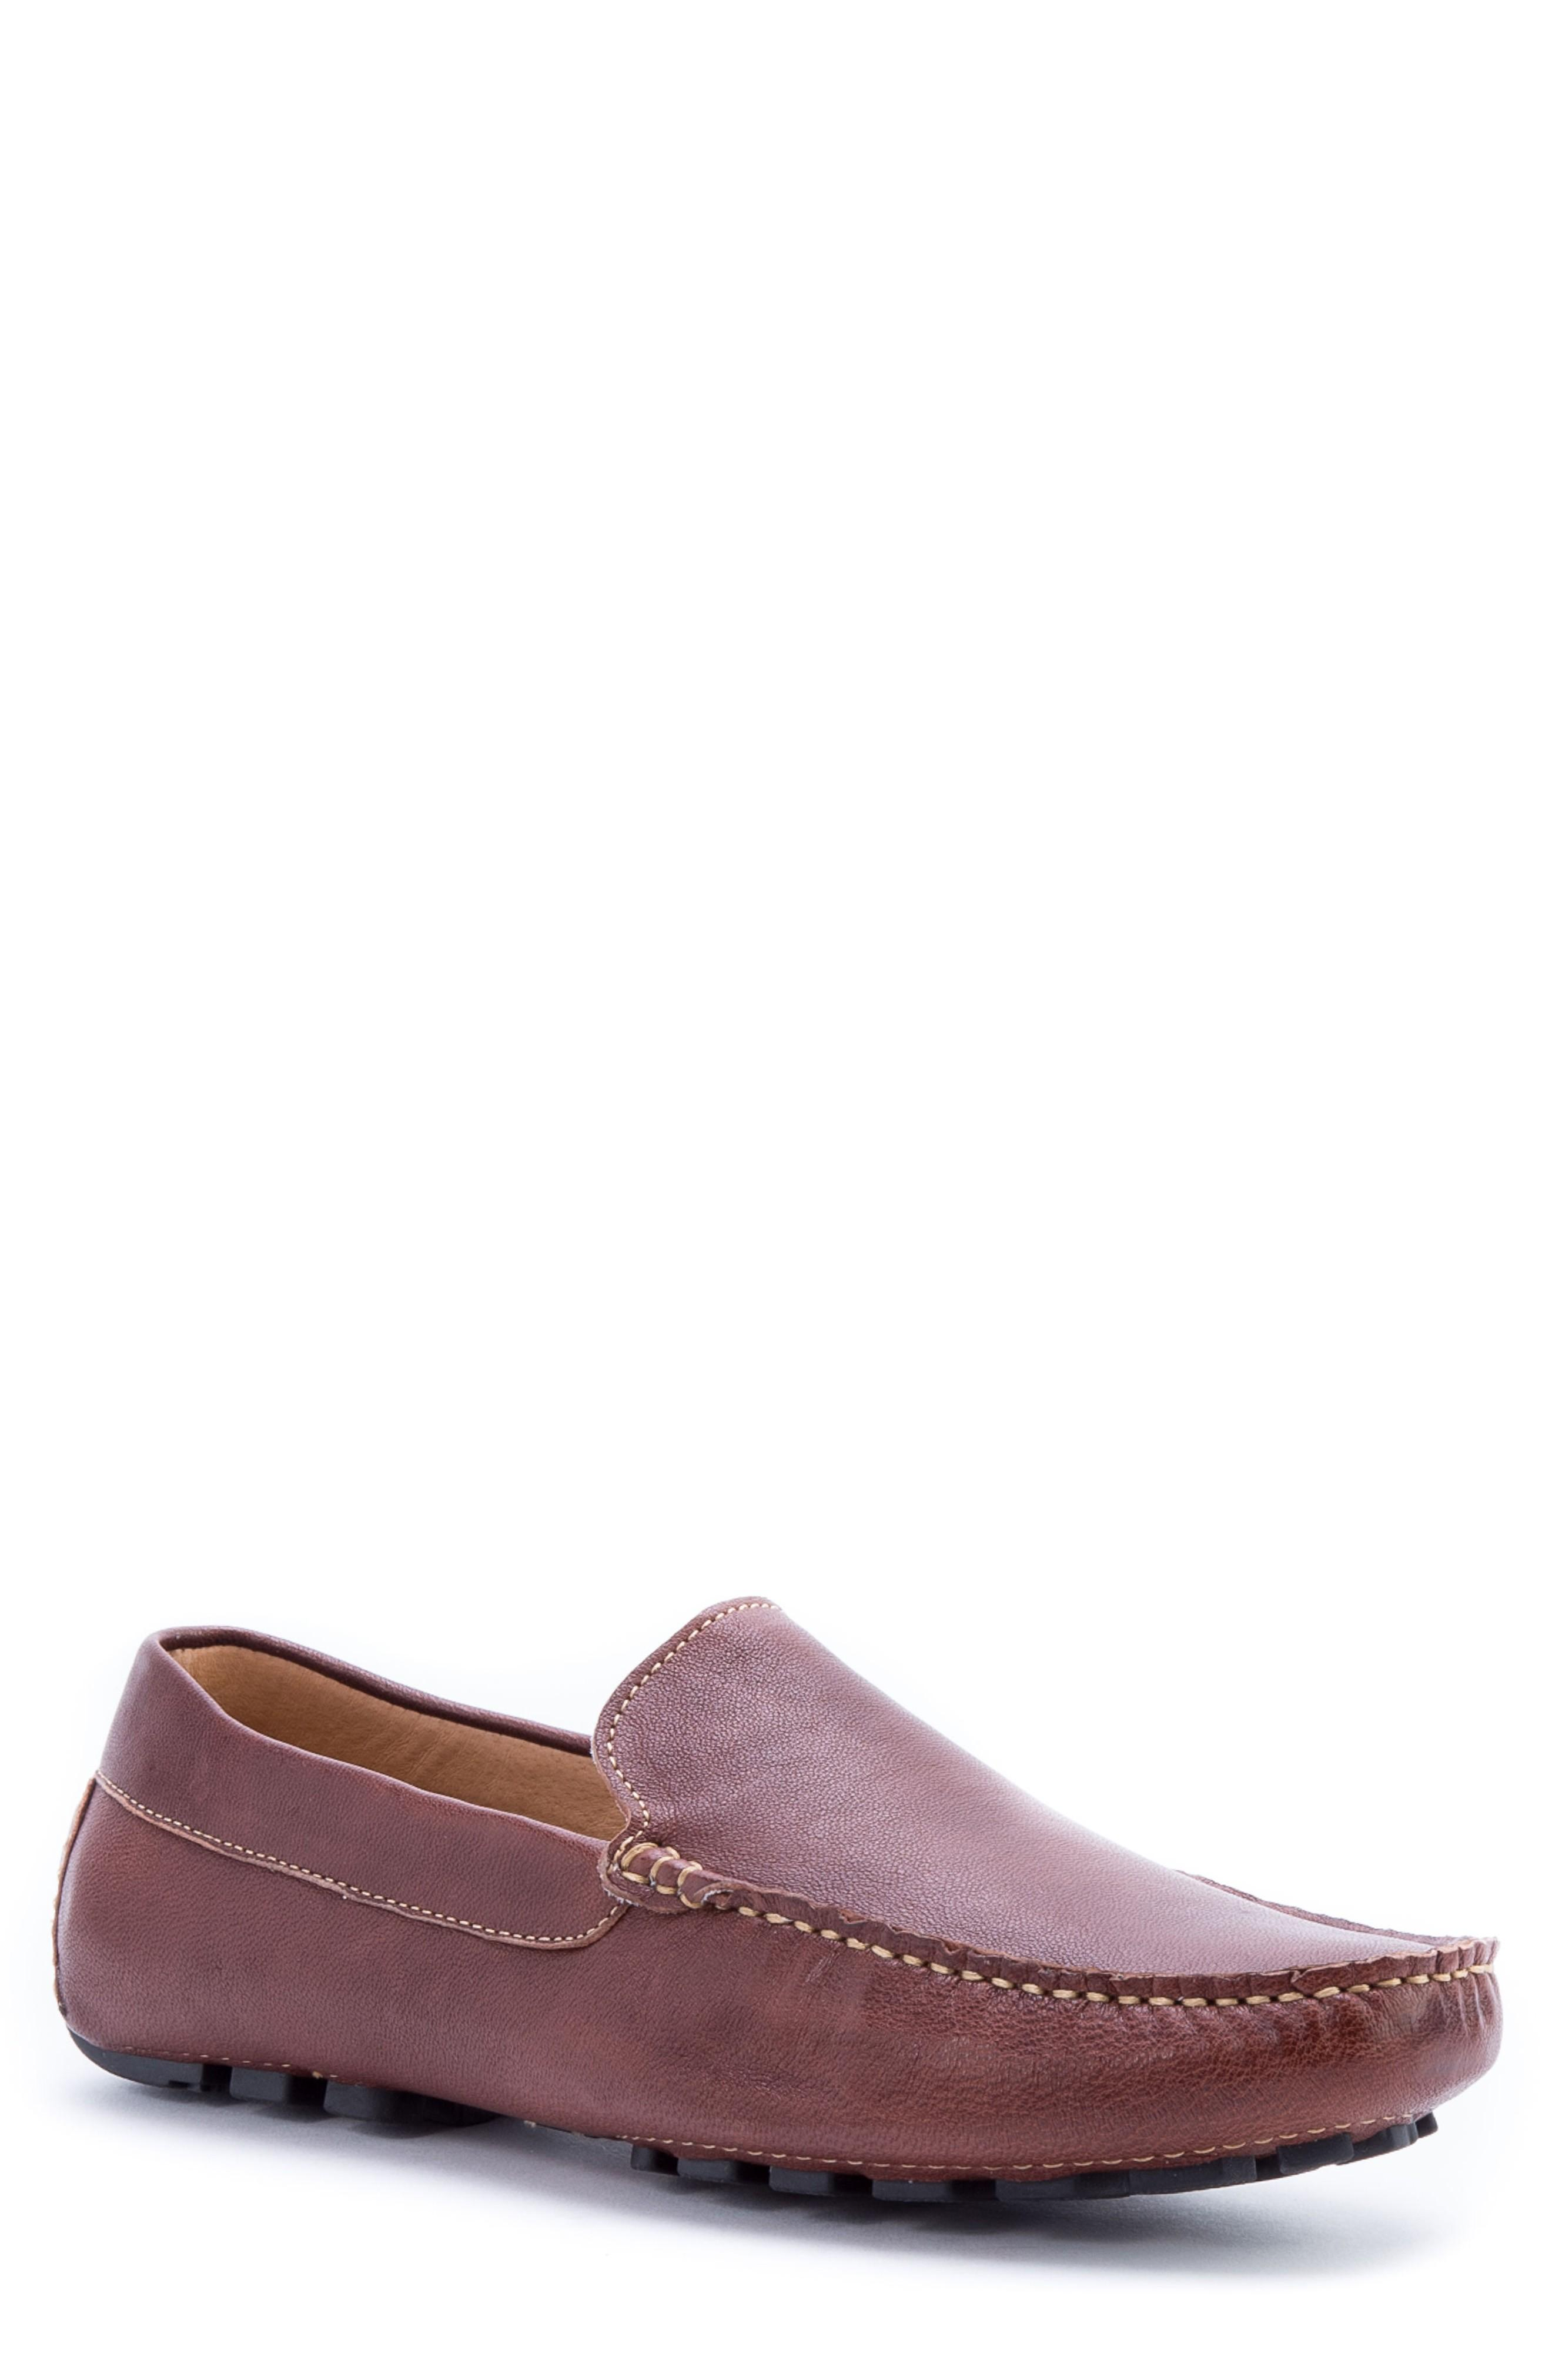 Zanzara Picasso 3 Moc Toe Driving Loafer In Brown Leather